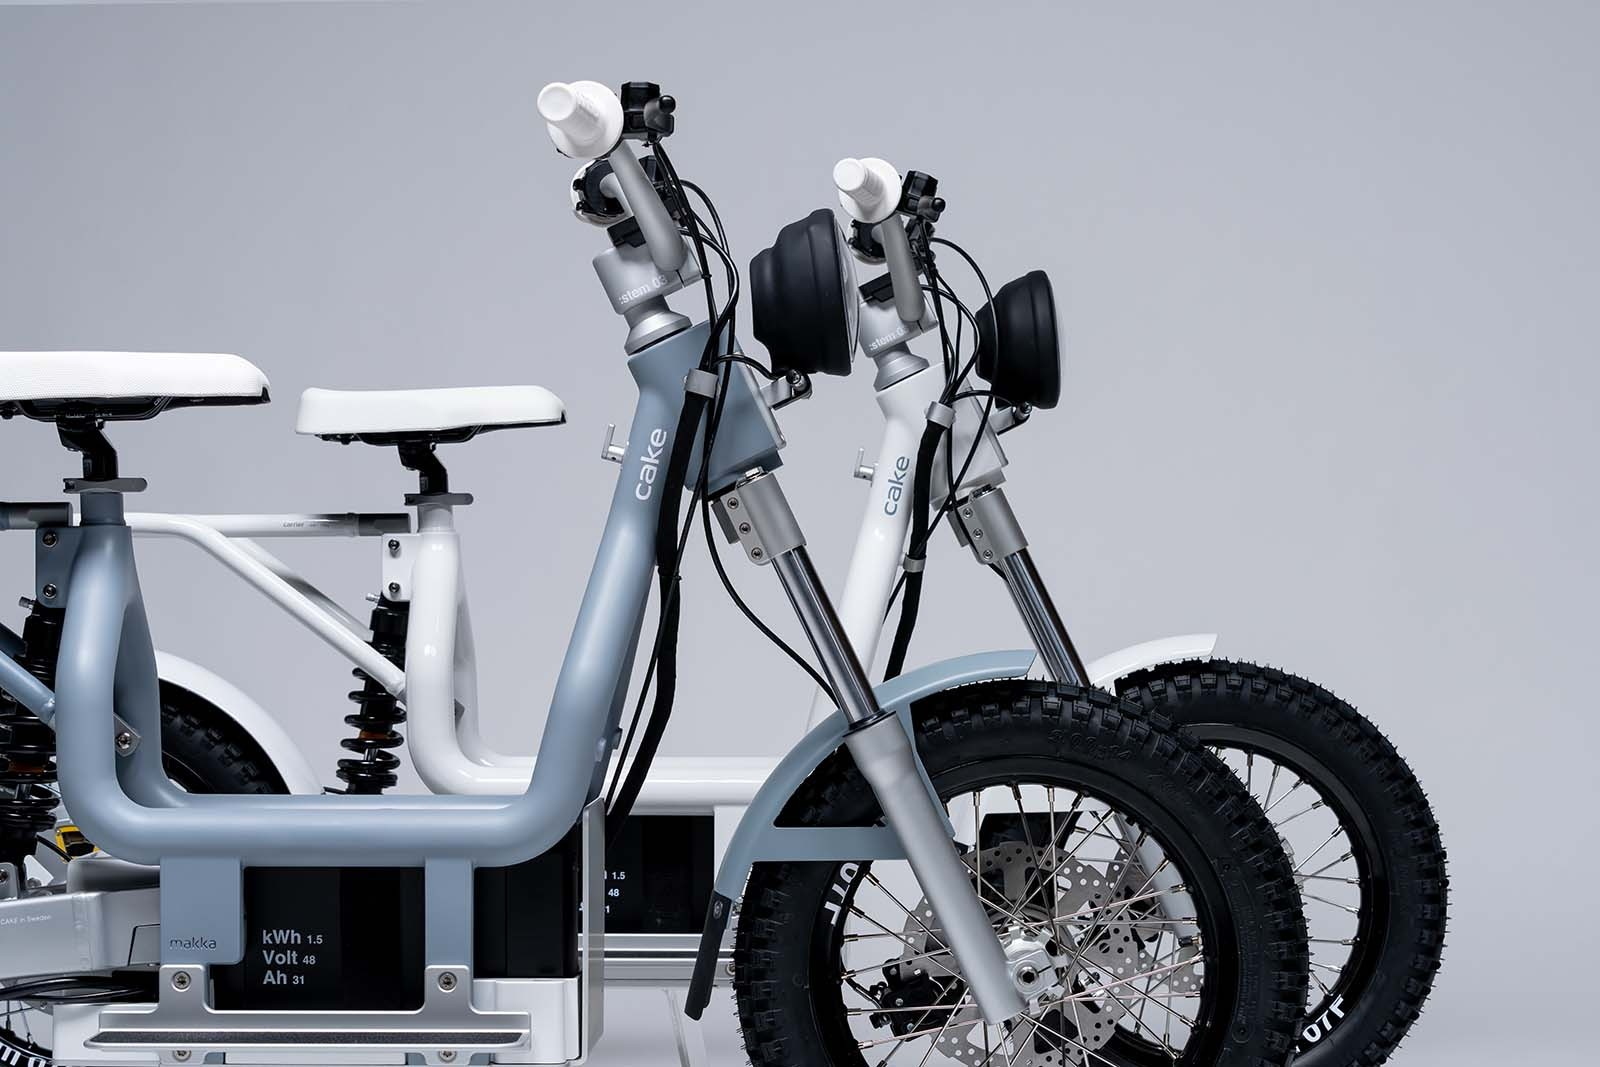 sweden's-cake-electric-motorcycles-pulls-in-$60m-funding-for-electric-motorbikes